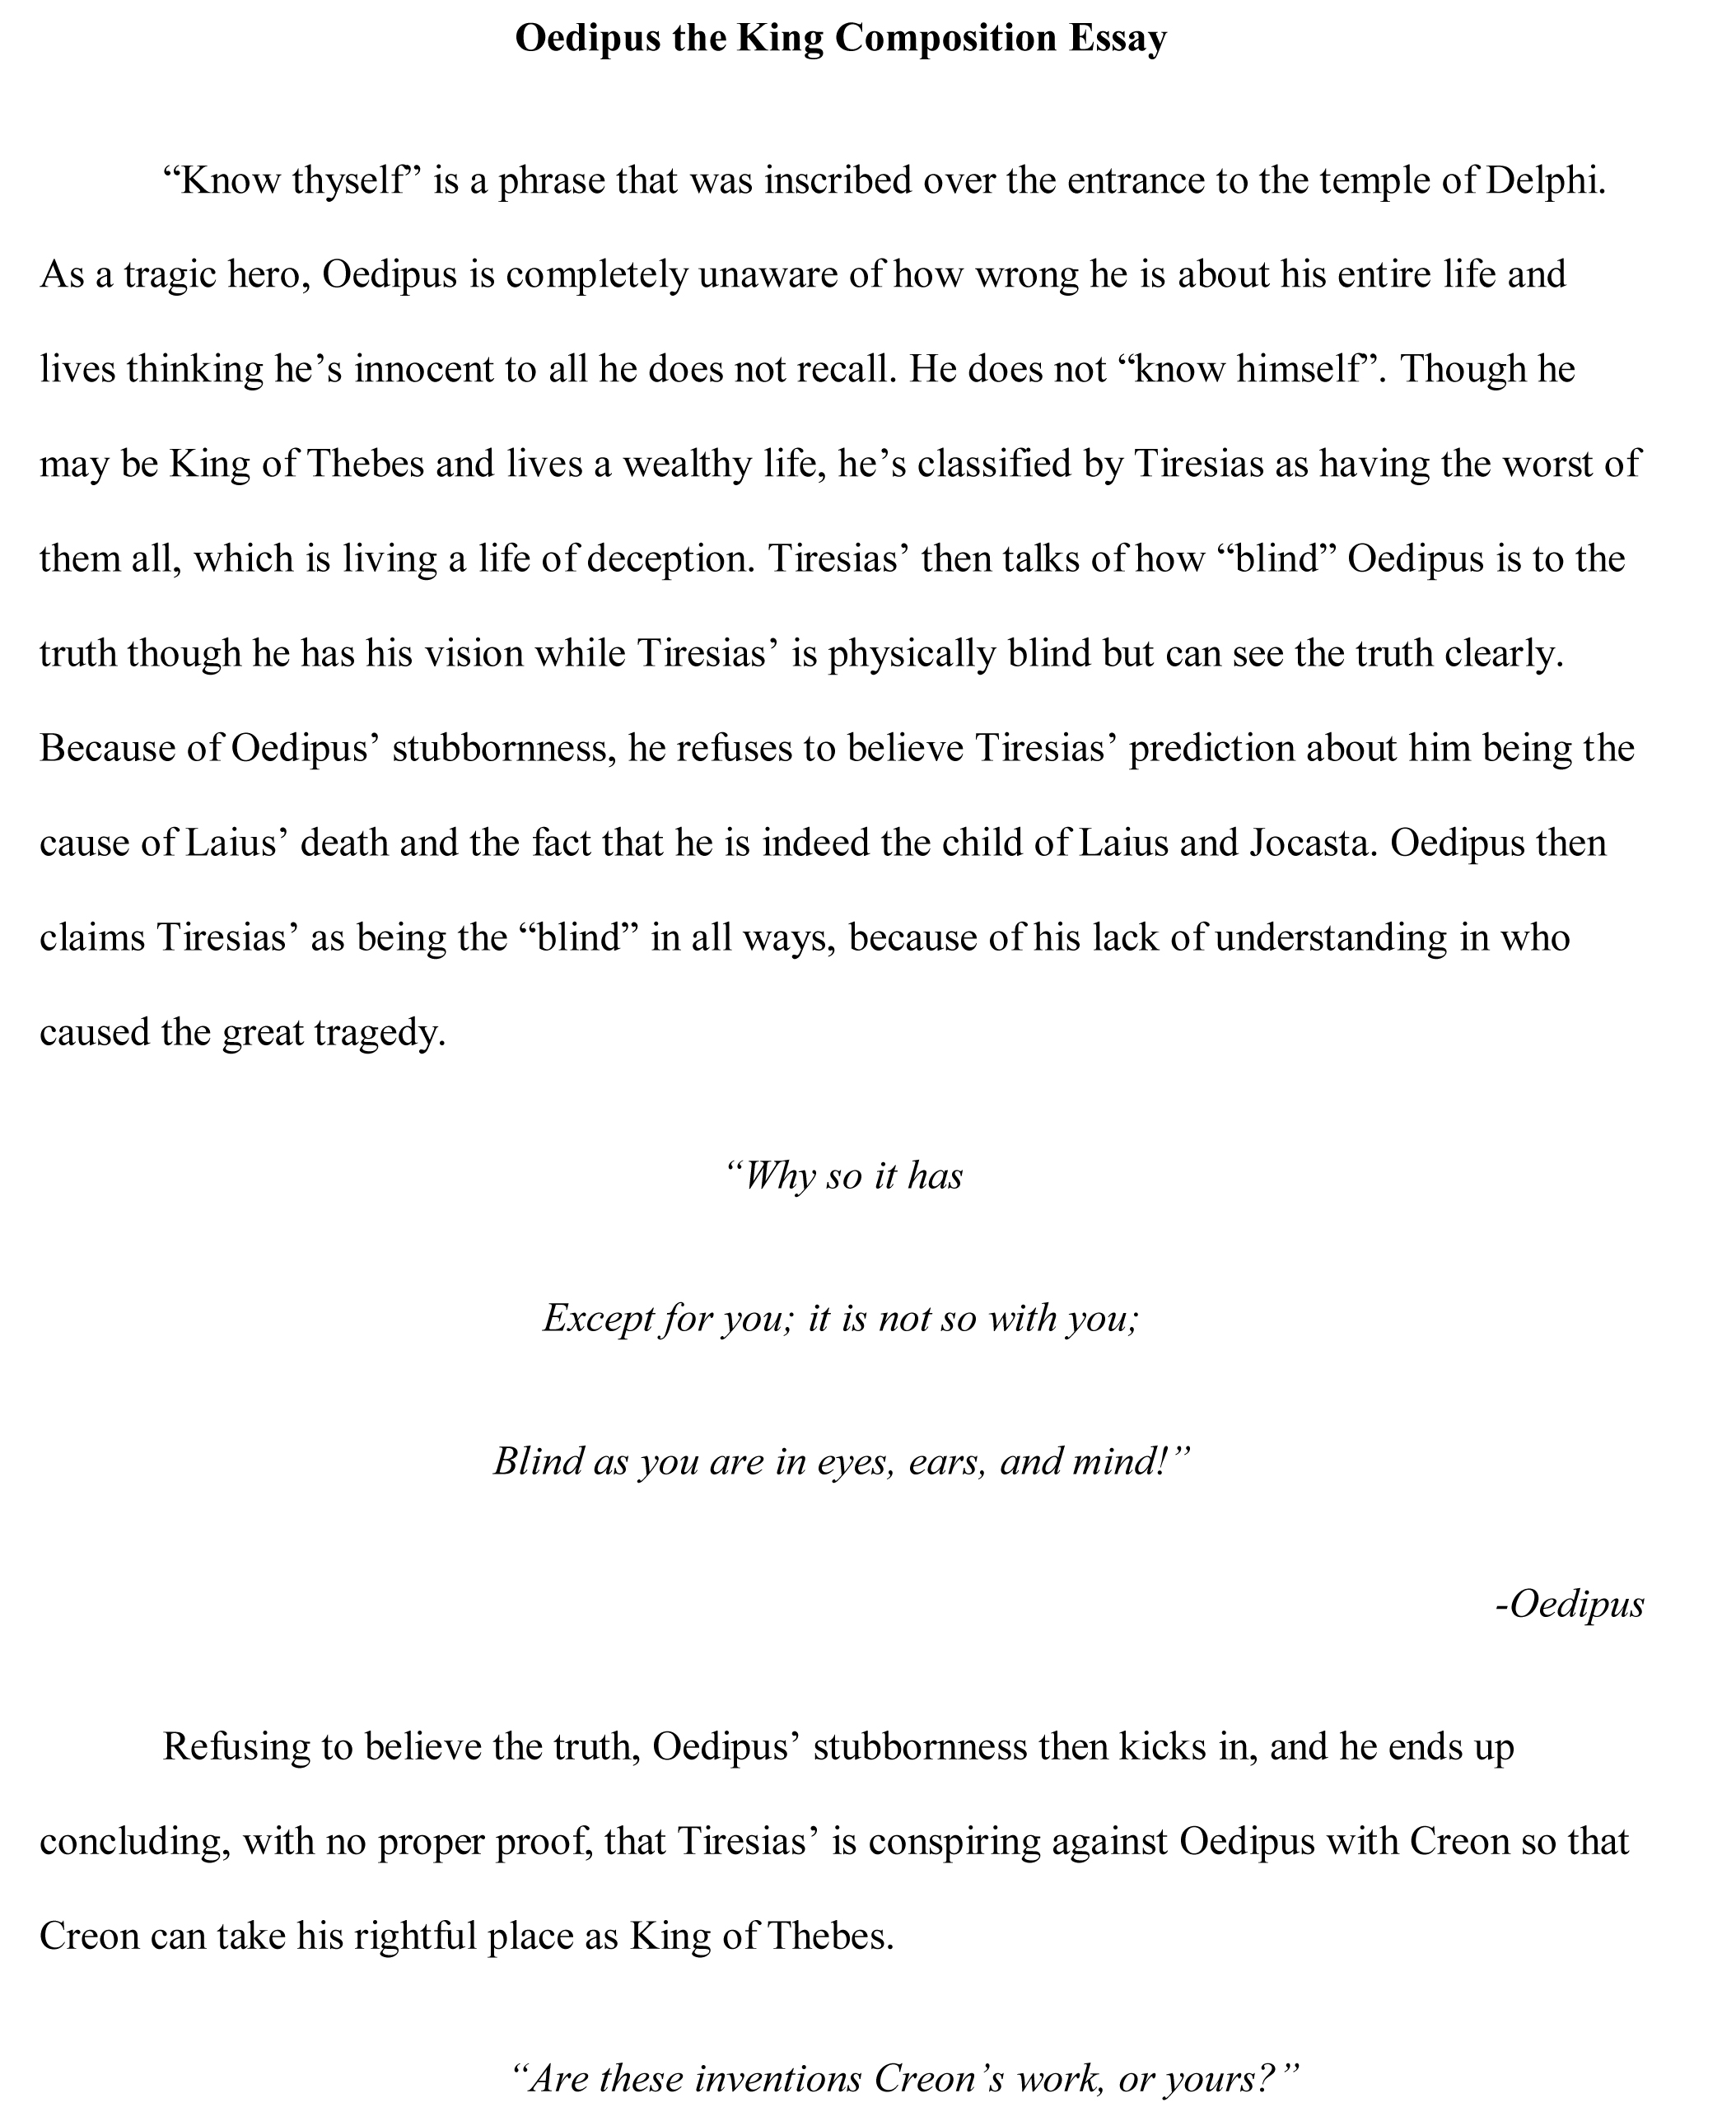 023 Good Essay Hooks Oedipus Free Sample Rare Quotes For Narrative About Love Full